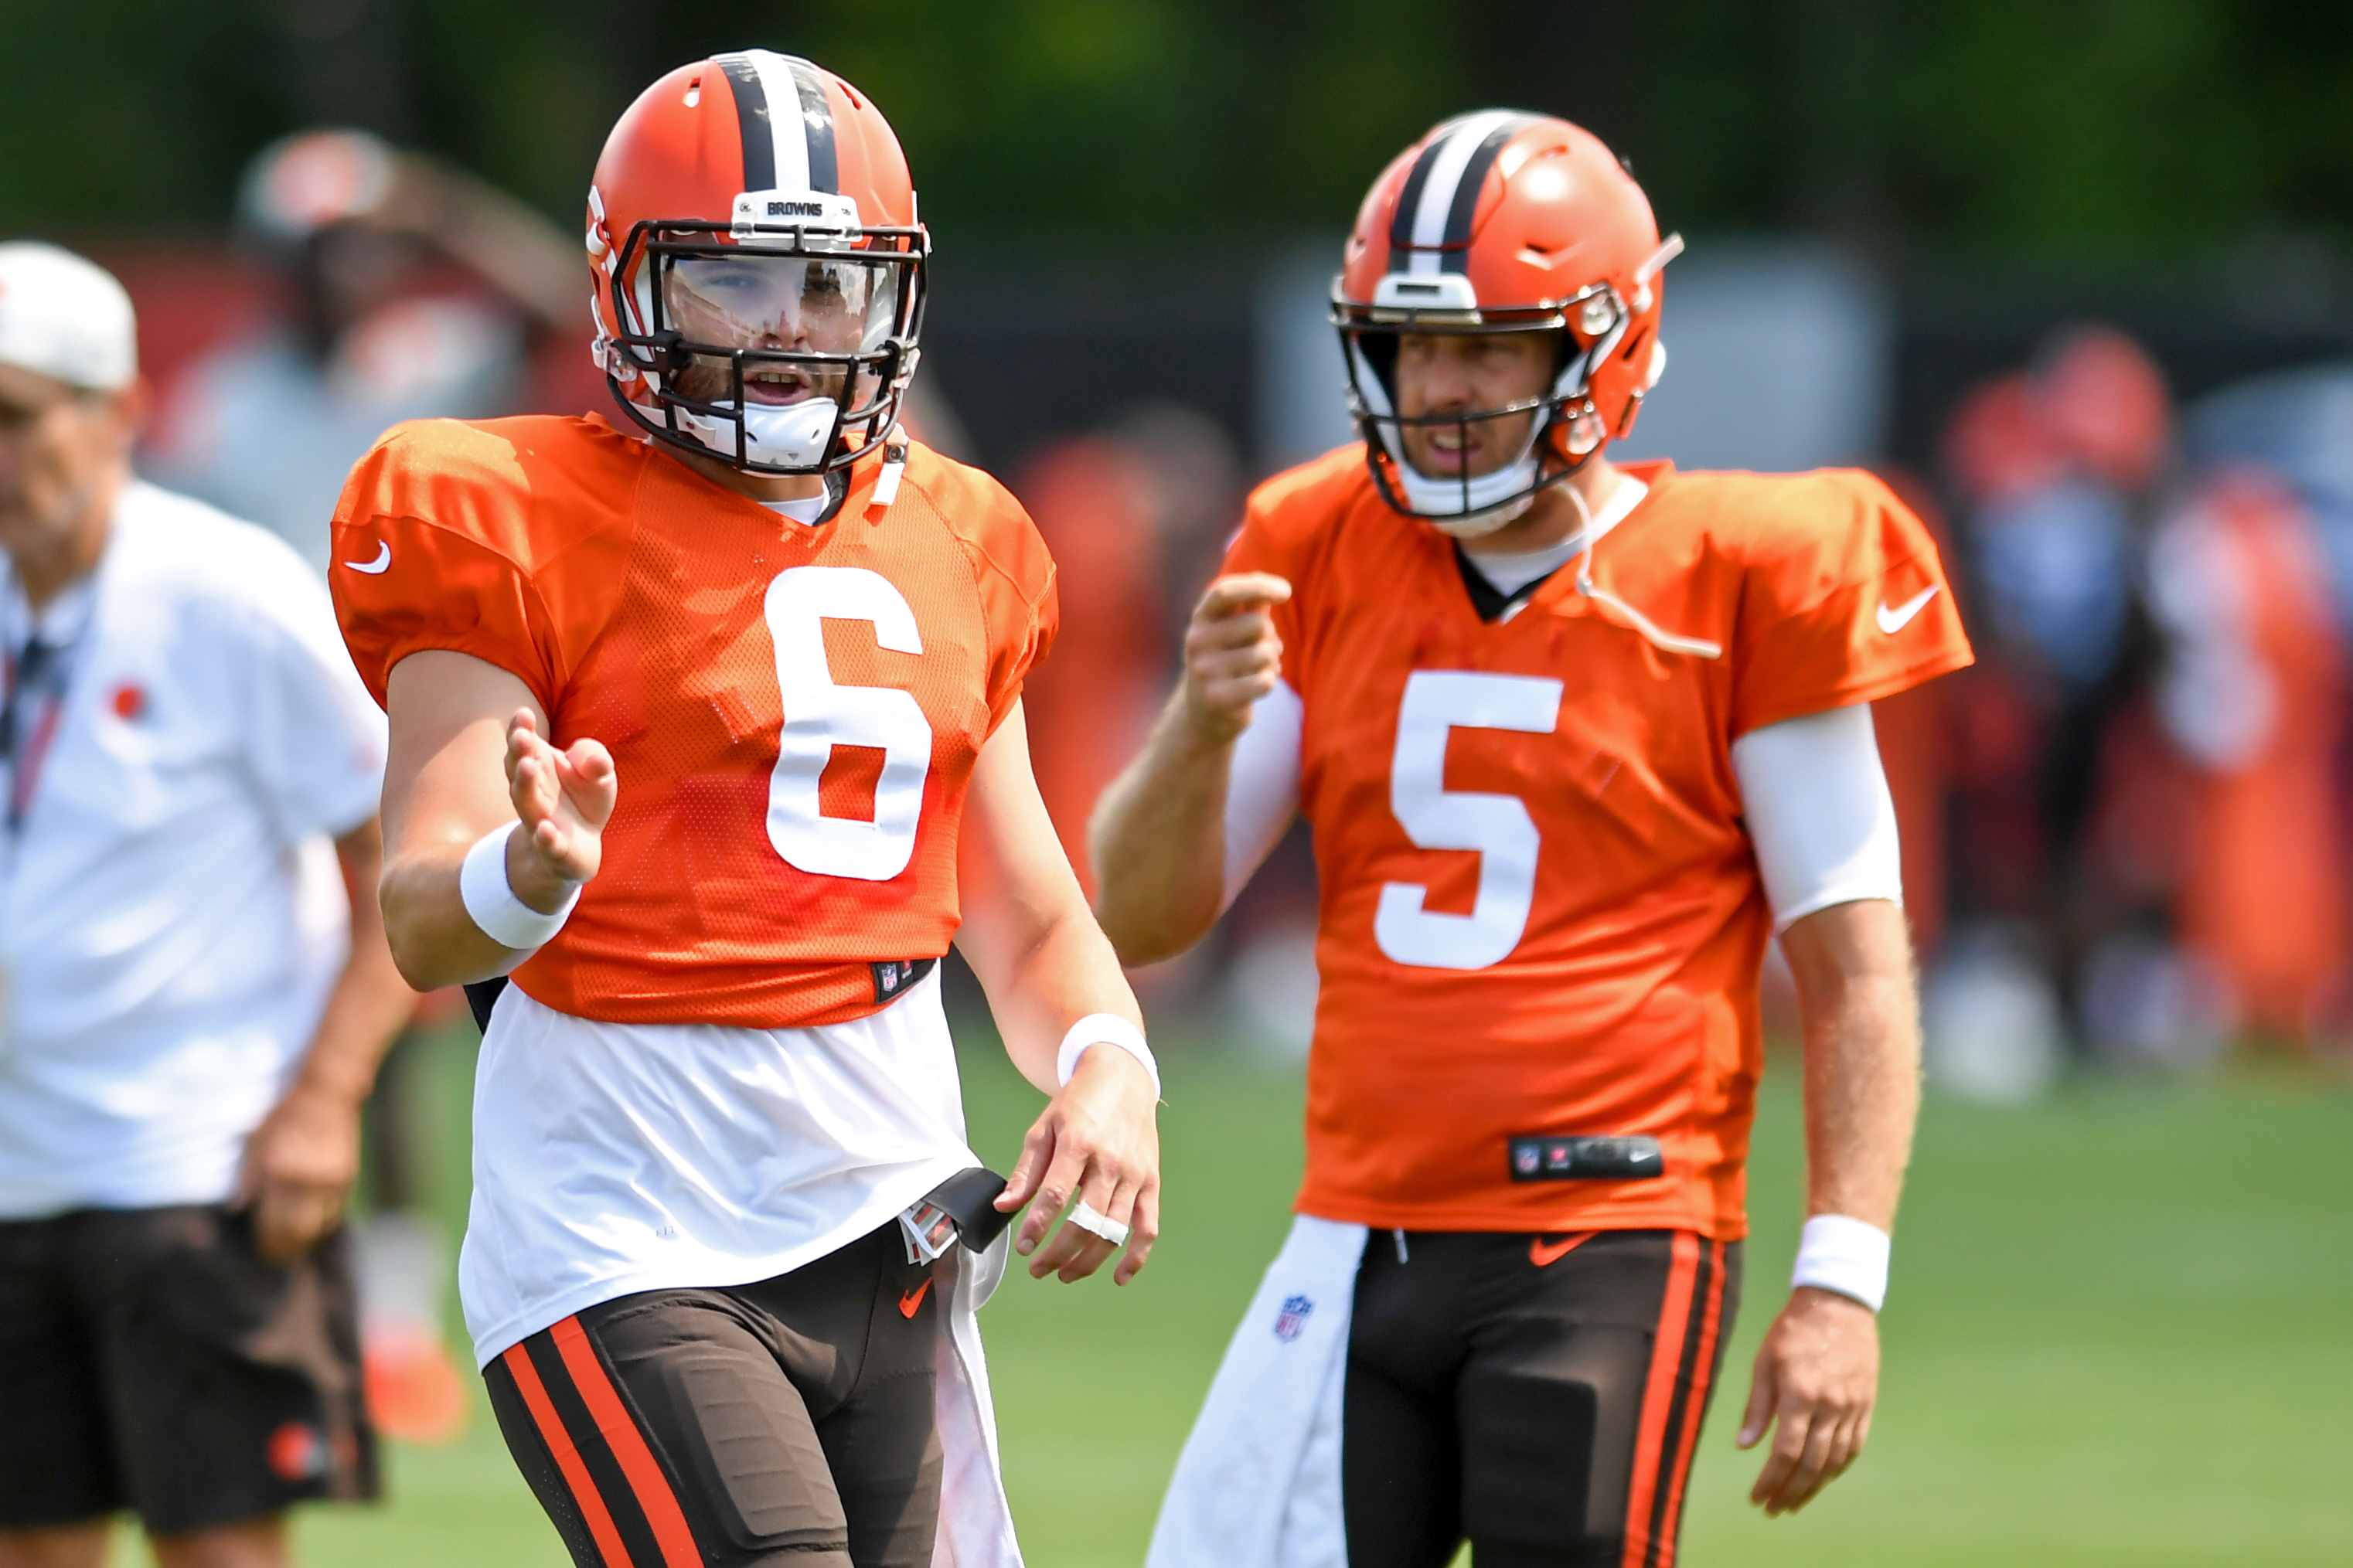 Quarterbacks Baker Mayfield #6 and Case Keenum #5 of the Cleveland Browns run a drill during Cleveland Browns Training Camp on August 3, 2021 in Berea, Ohio.